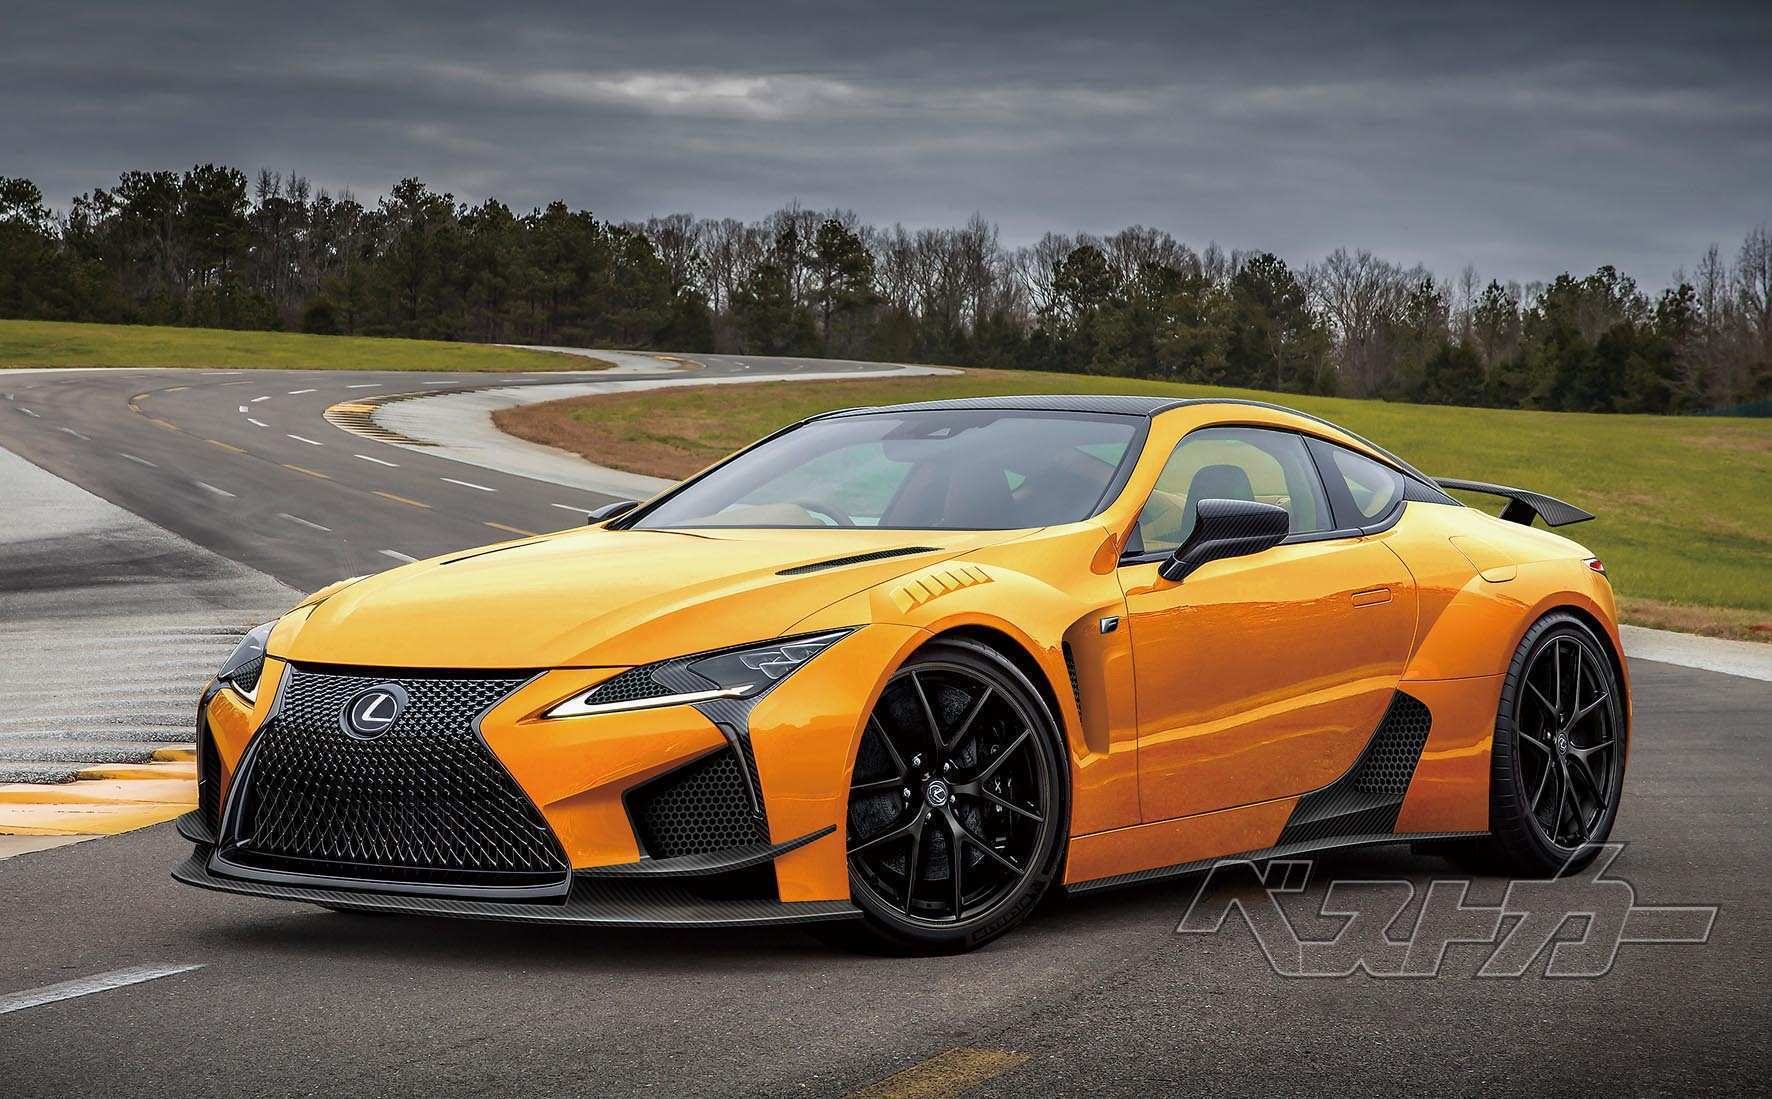 41 Gallery of 2020 Lexus Lf Lc Pictures for 2020 Lexus Lf Lc